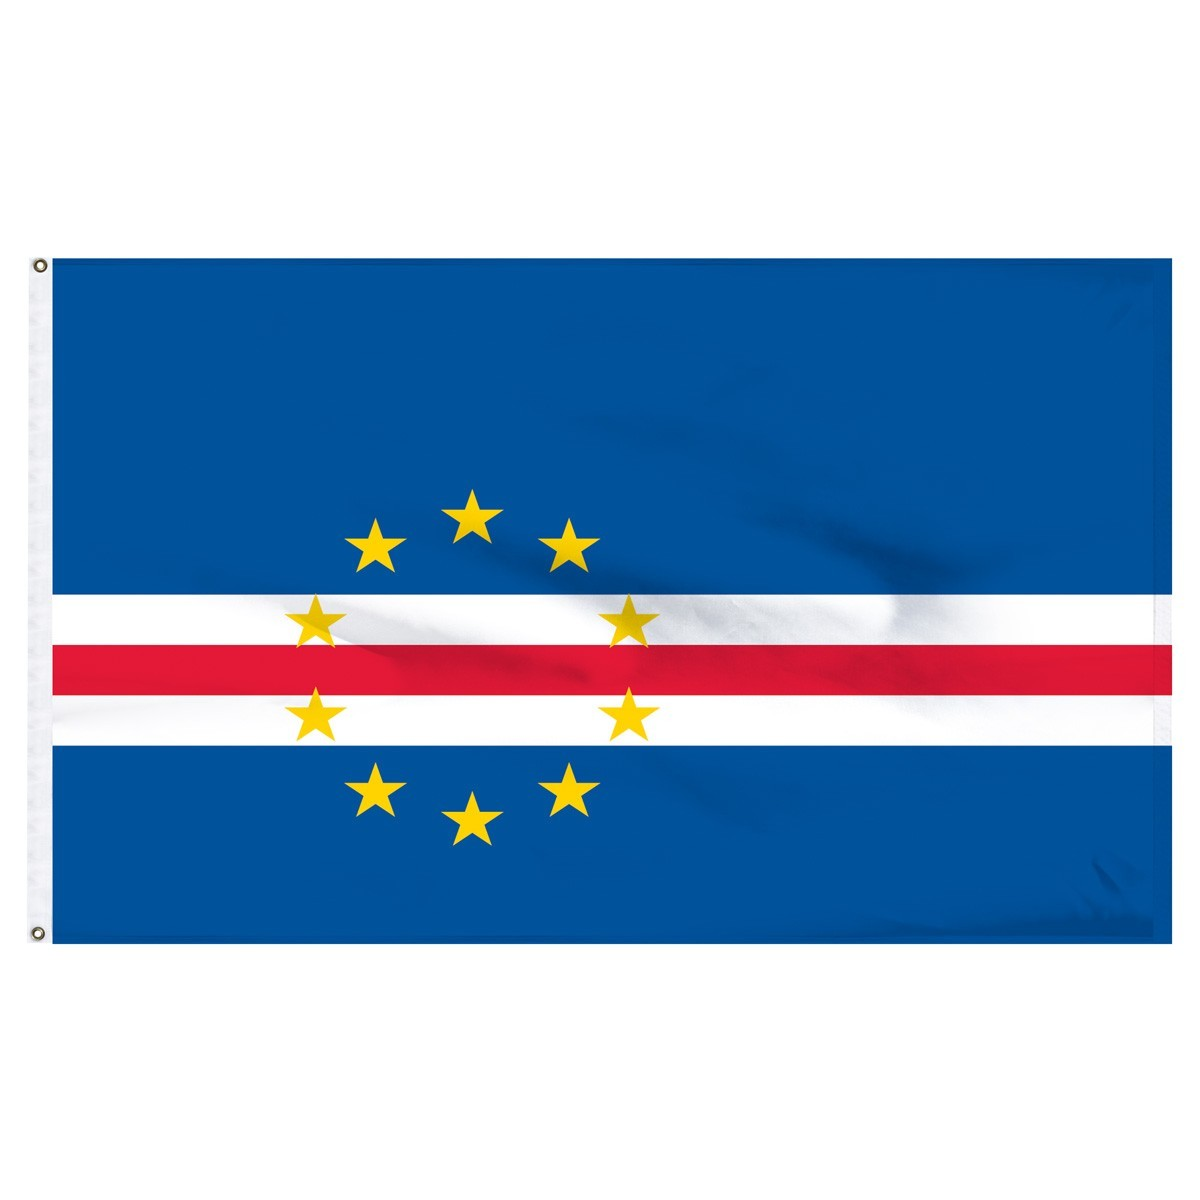 Cape Verde 4' x 6' Outdoor Nylon Flag